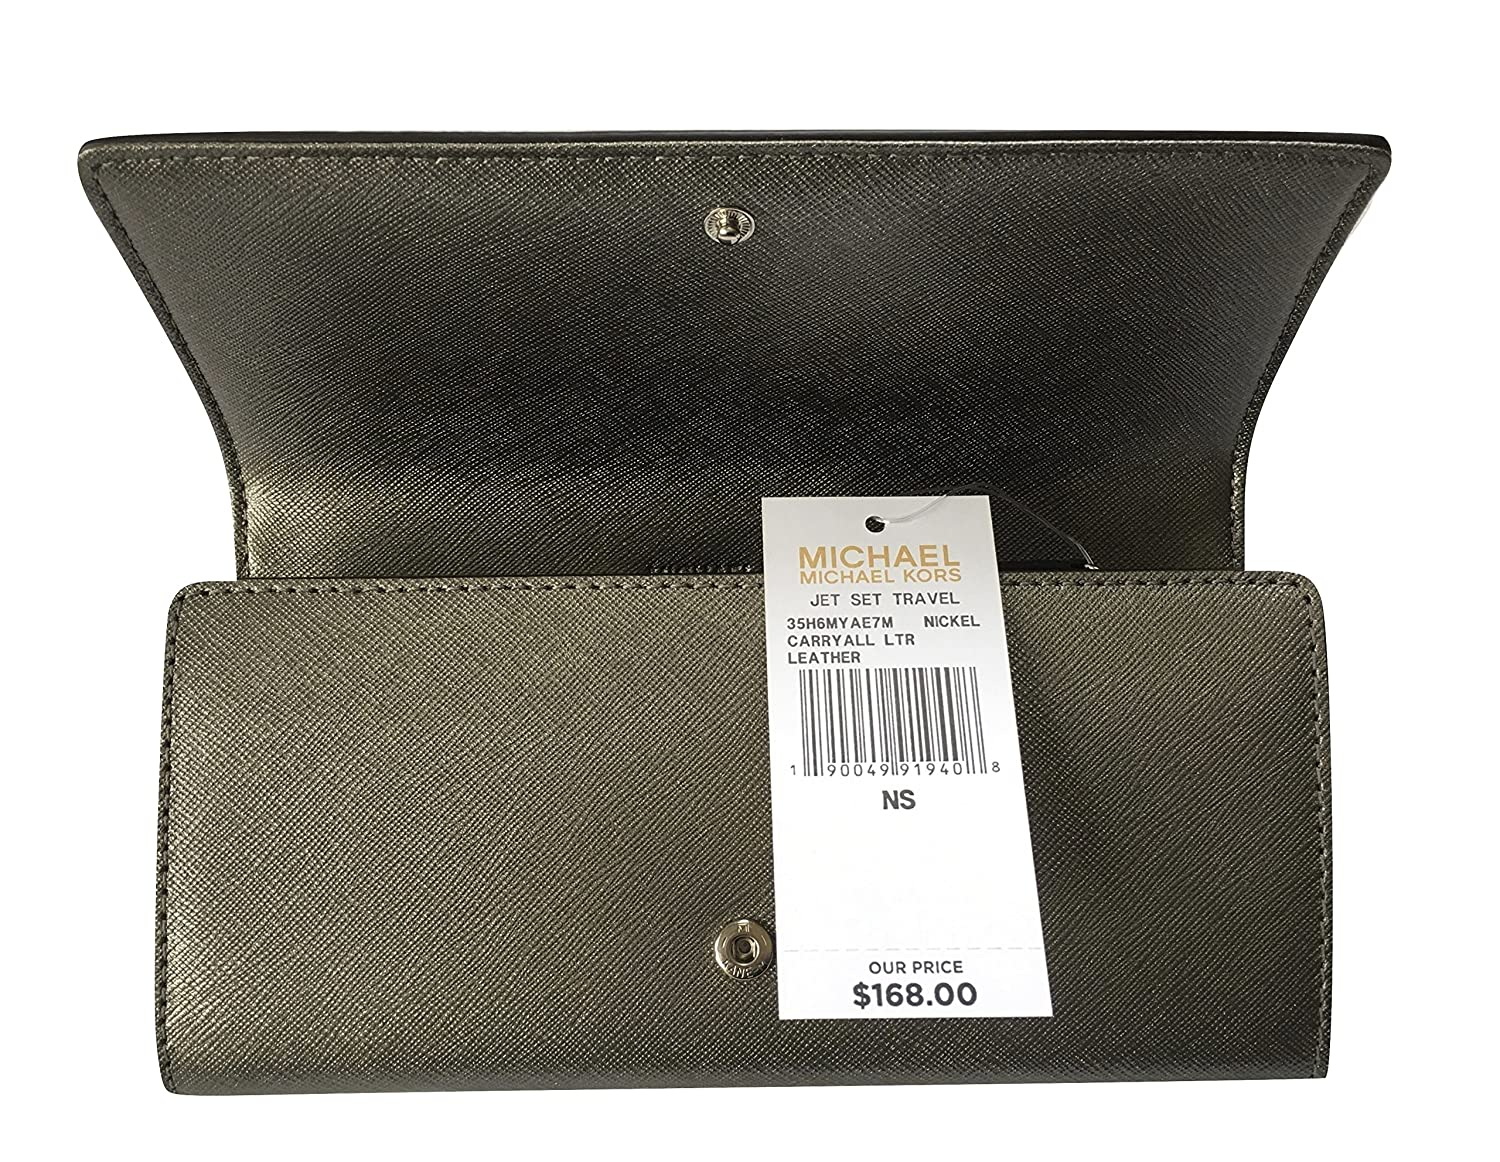 4a6bf3a1edb3 Amazon.com: Michael Kors Jet Set Travel Saffiano Leather Carryall Wallet ( Nickel): Shoes